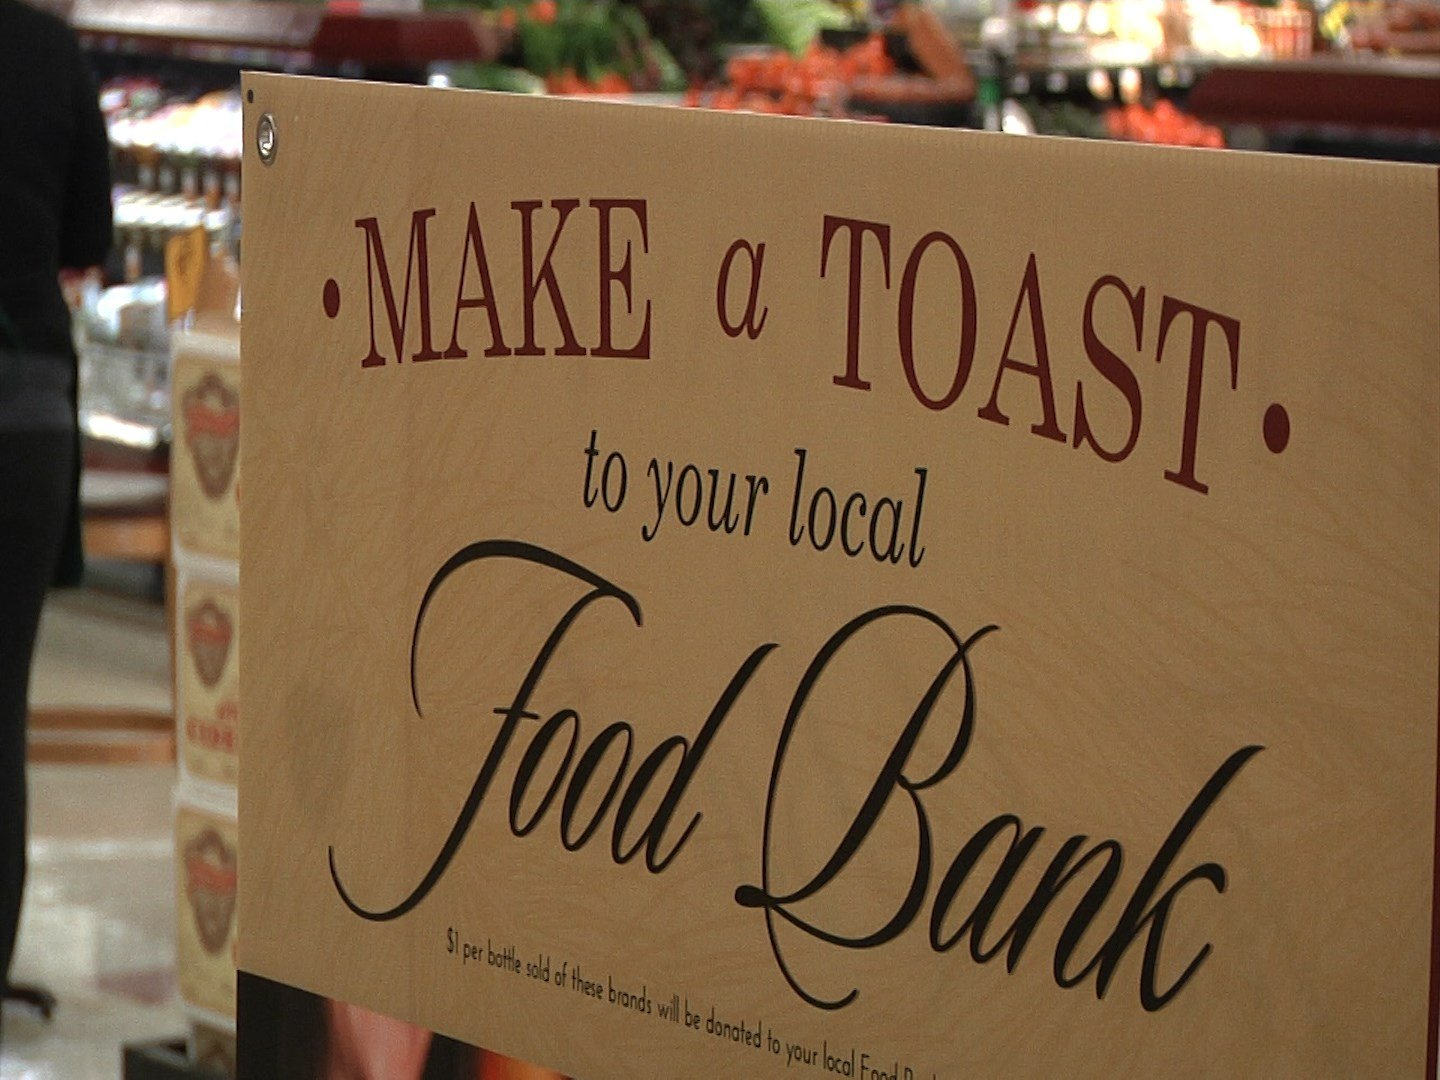 Make a Toast to your local Food Bank